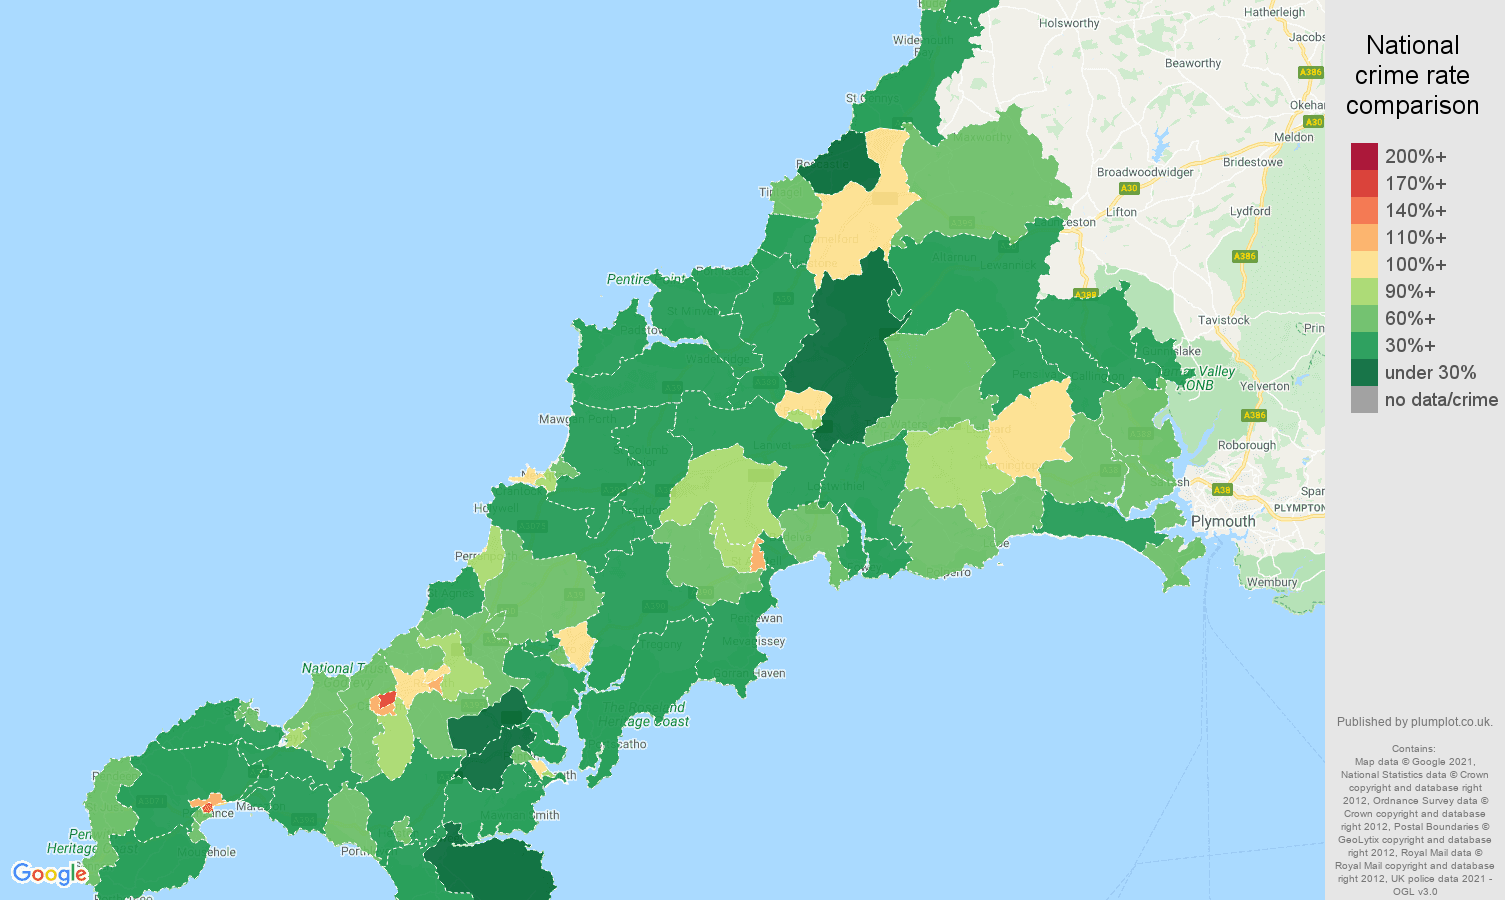 Cornwall violent crime rate comparison map